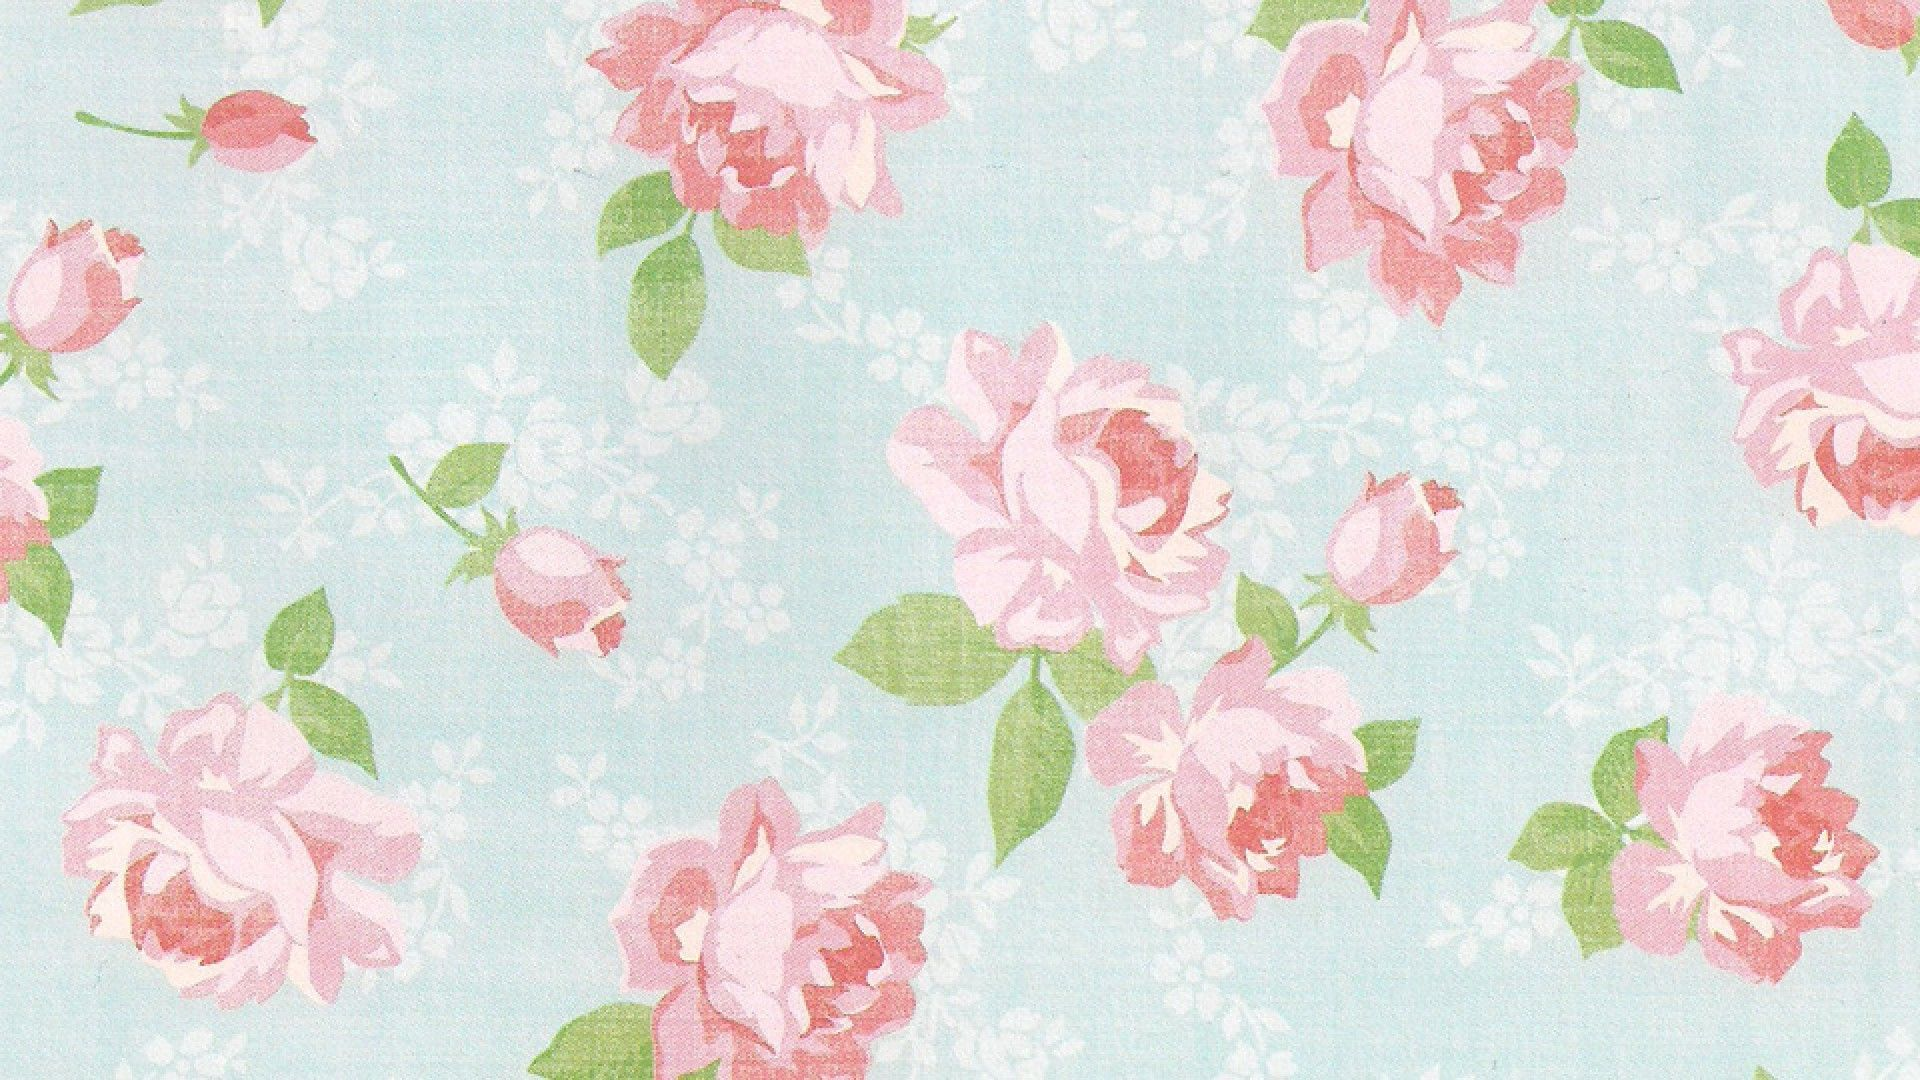 floral vintage tumblr backgrounds | Background Check All